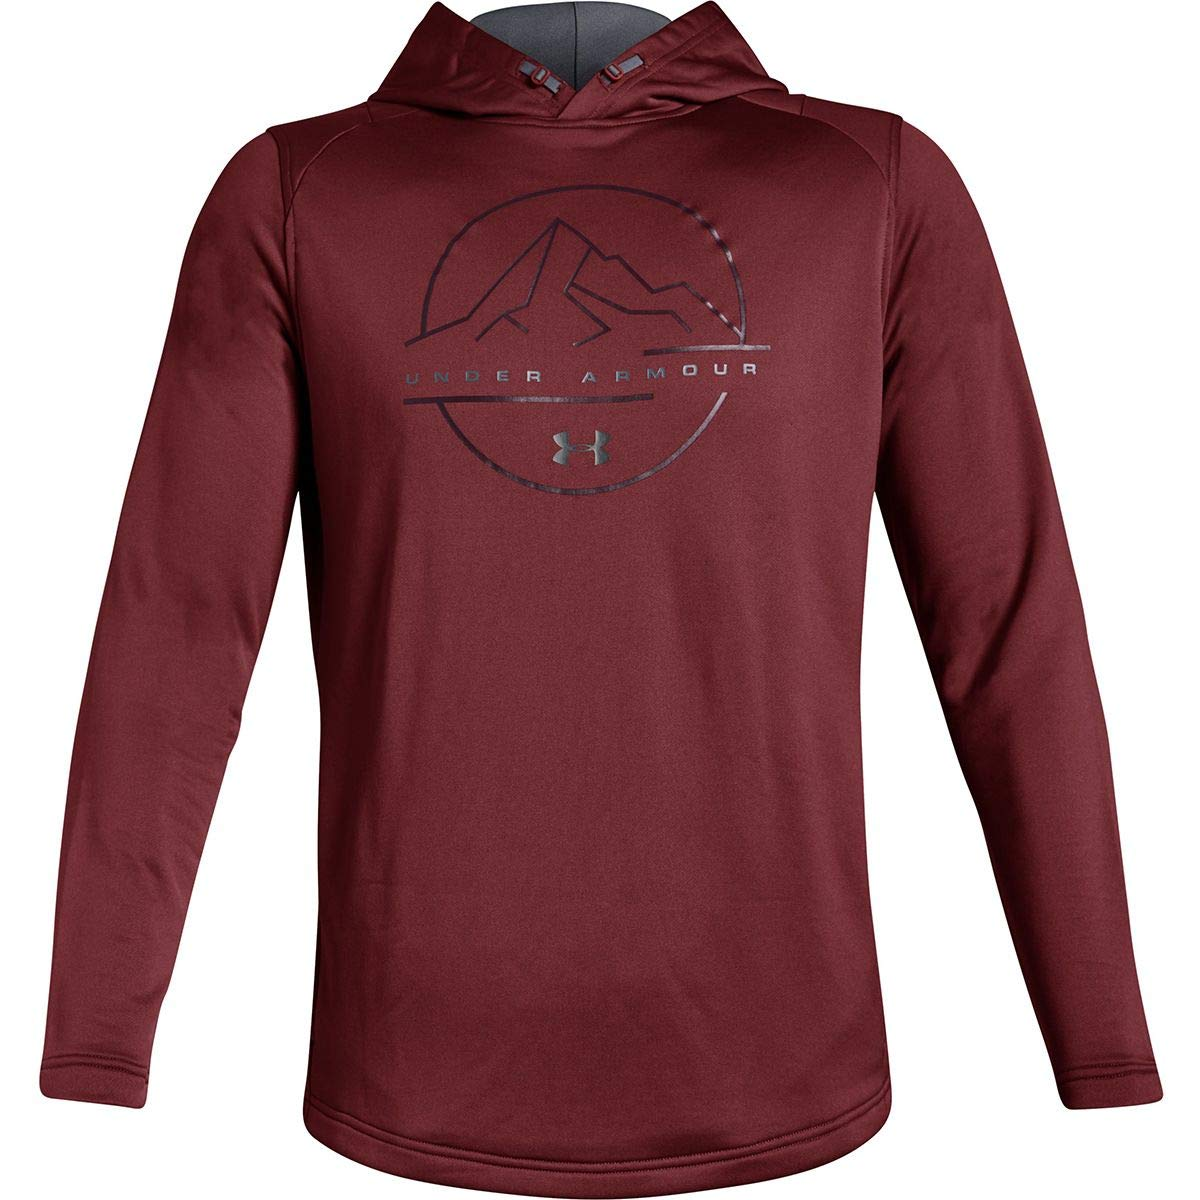 Under Armour Tech Terry MTN Graphic Hoodie - Men's Brick Red/Graphite, S